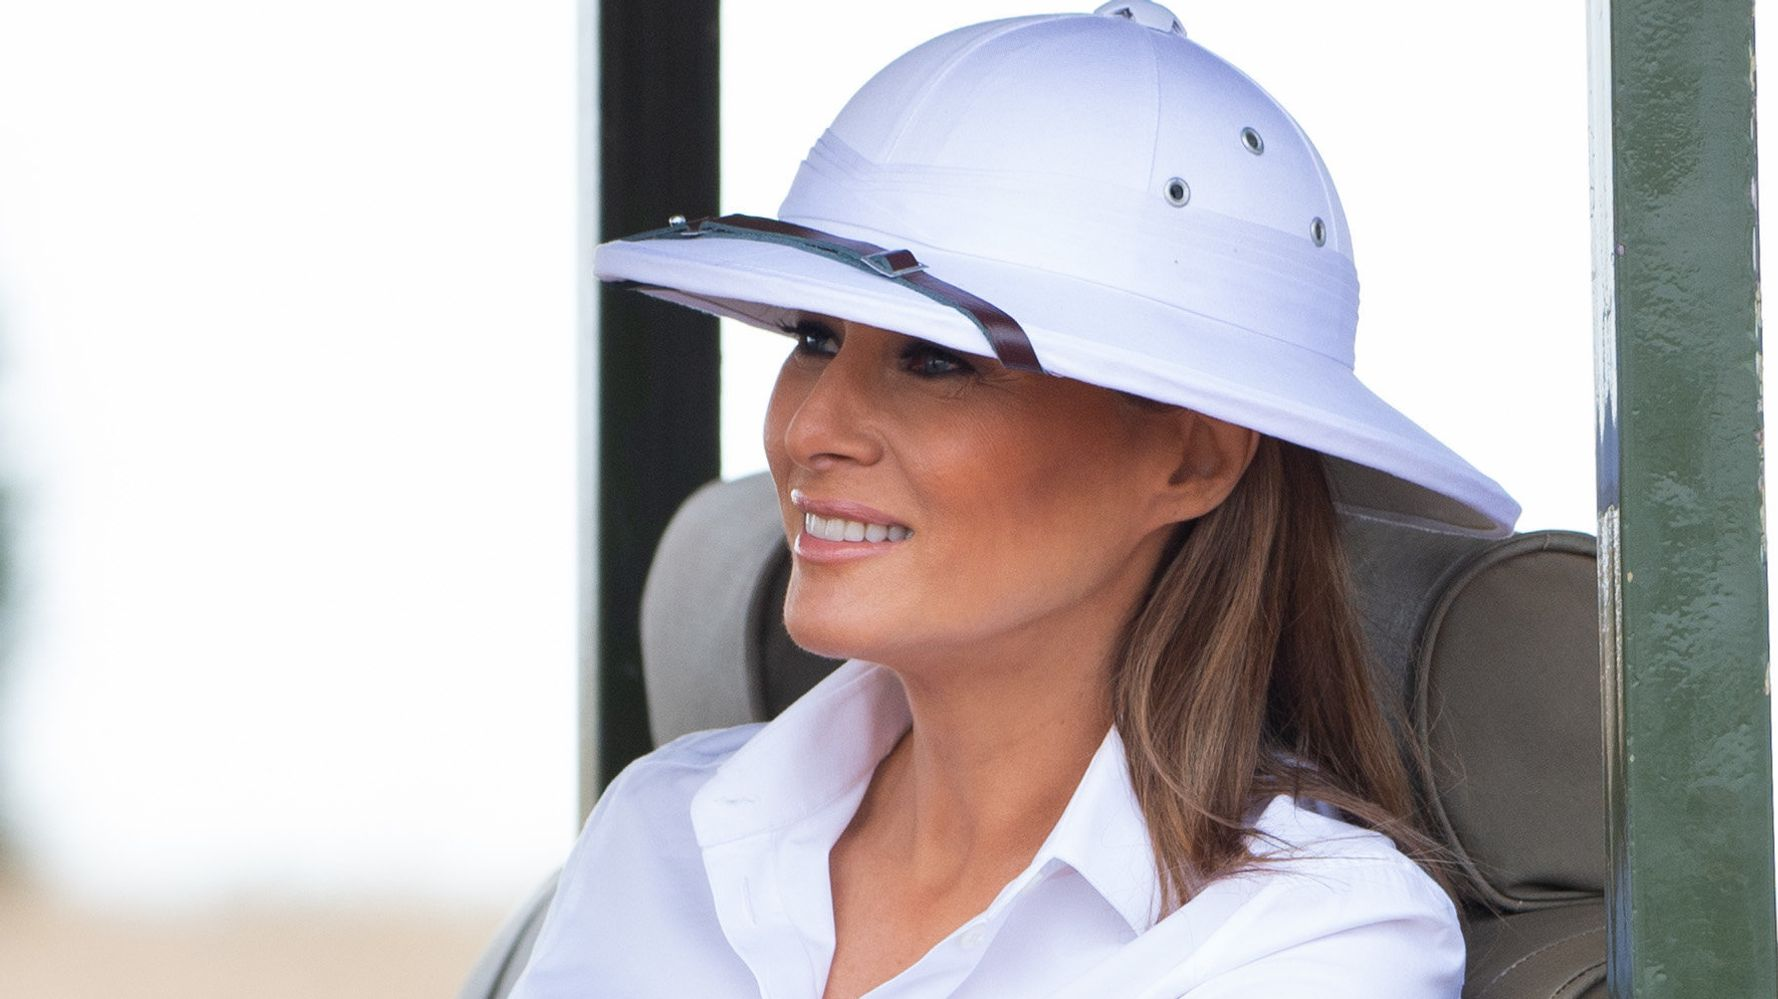 Melania Trump's Colonialist Outfit During Africa Trip Has